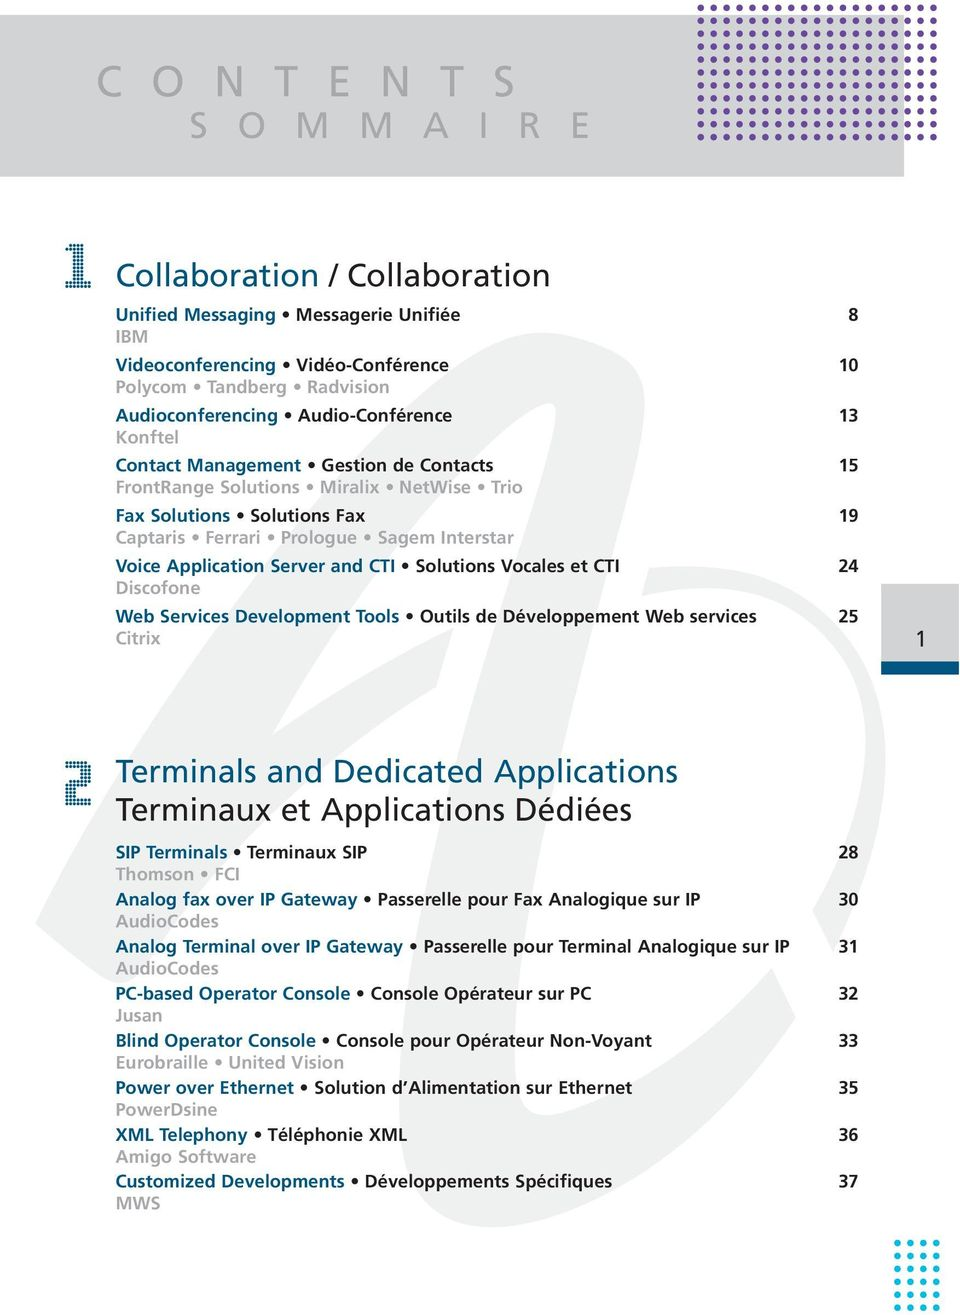 Application Server and CTI Solutions Vocales et CTI 24 Discofone Web Services Development Tools Outils de Développement Web services 25 Citrix 1 2 Terminals and Dedicated Applications Terminaux et